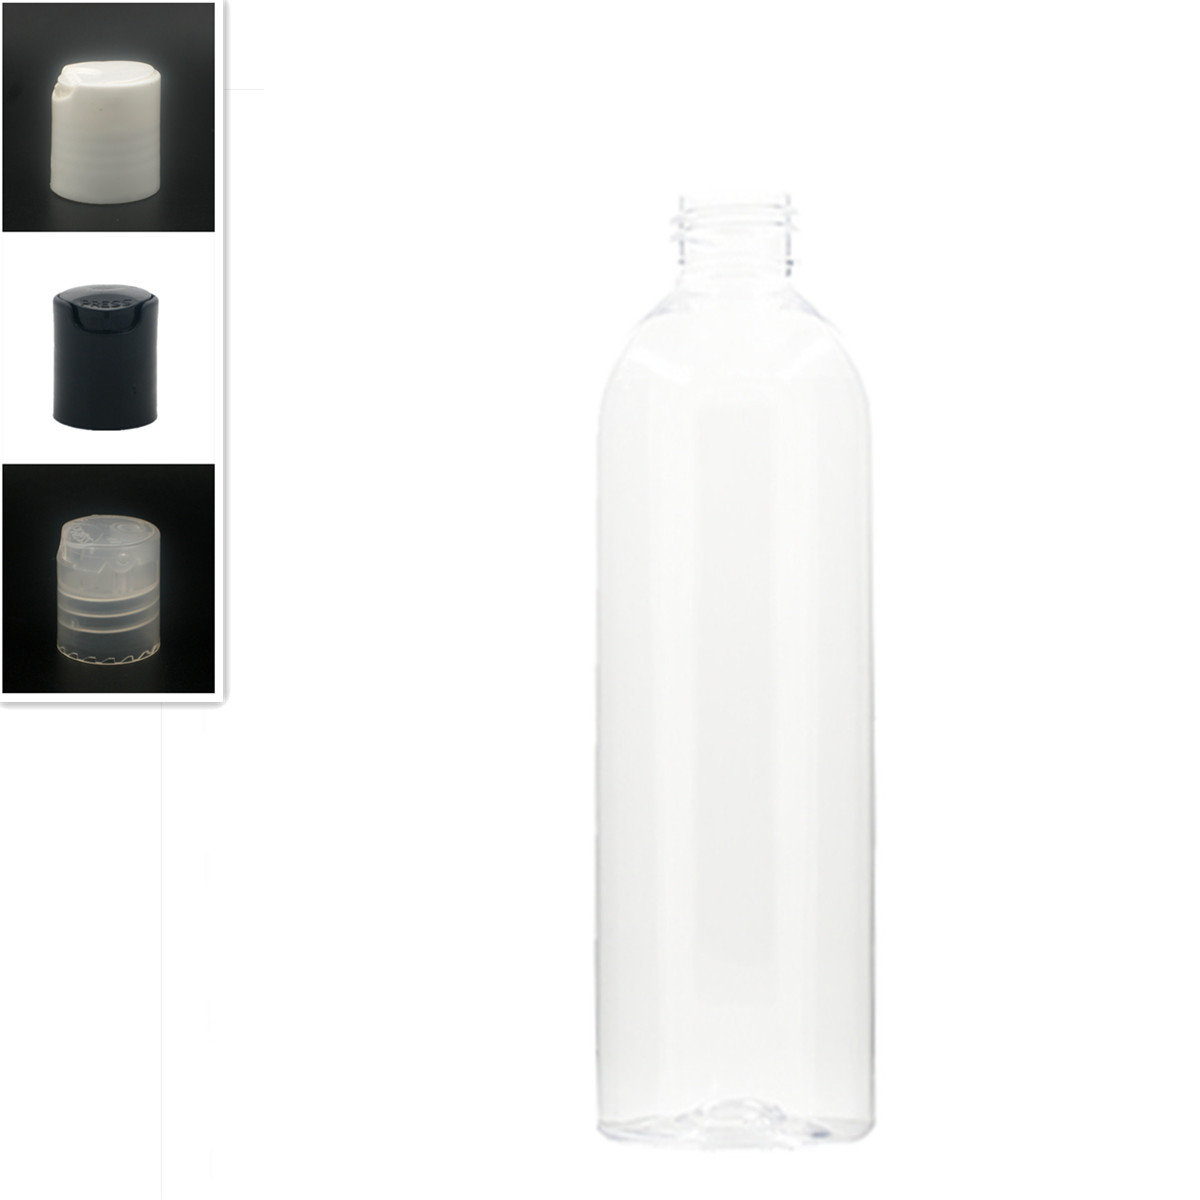 250ml Empty Cosmo Round Plastic Bottle, Clear Pet Bottle With White/black Disc Top Cap